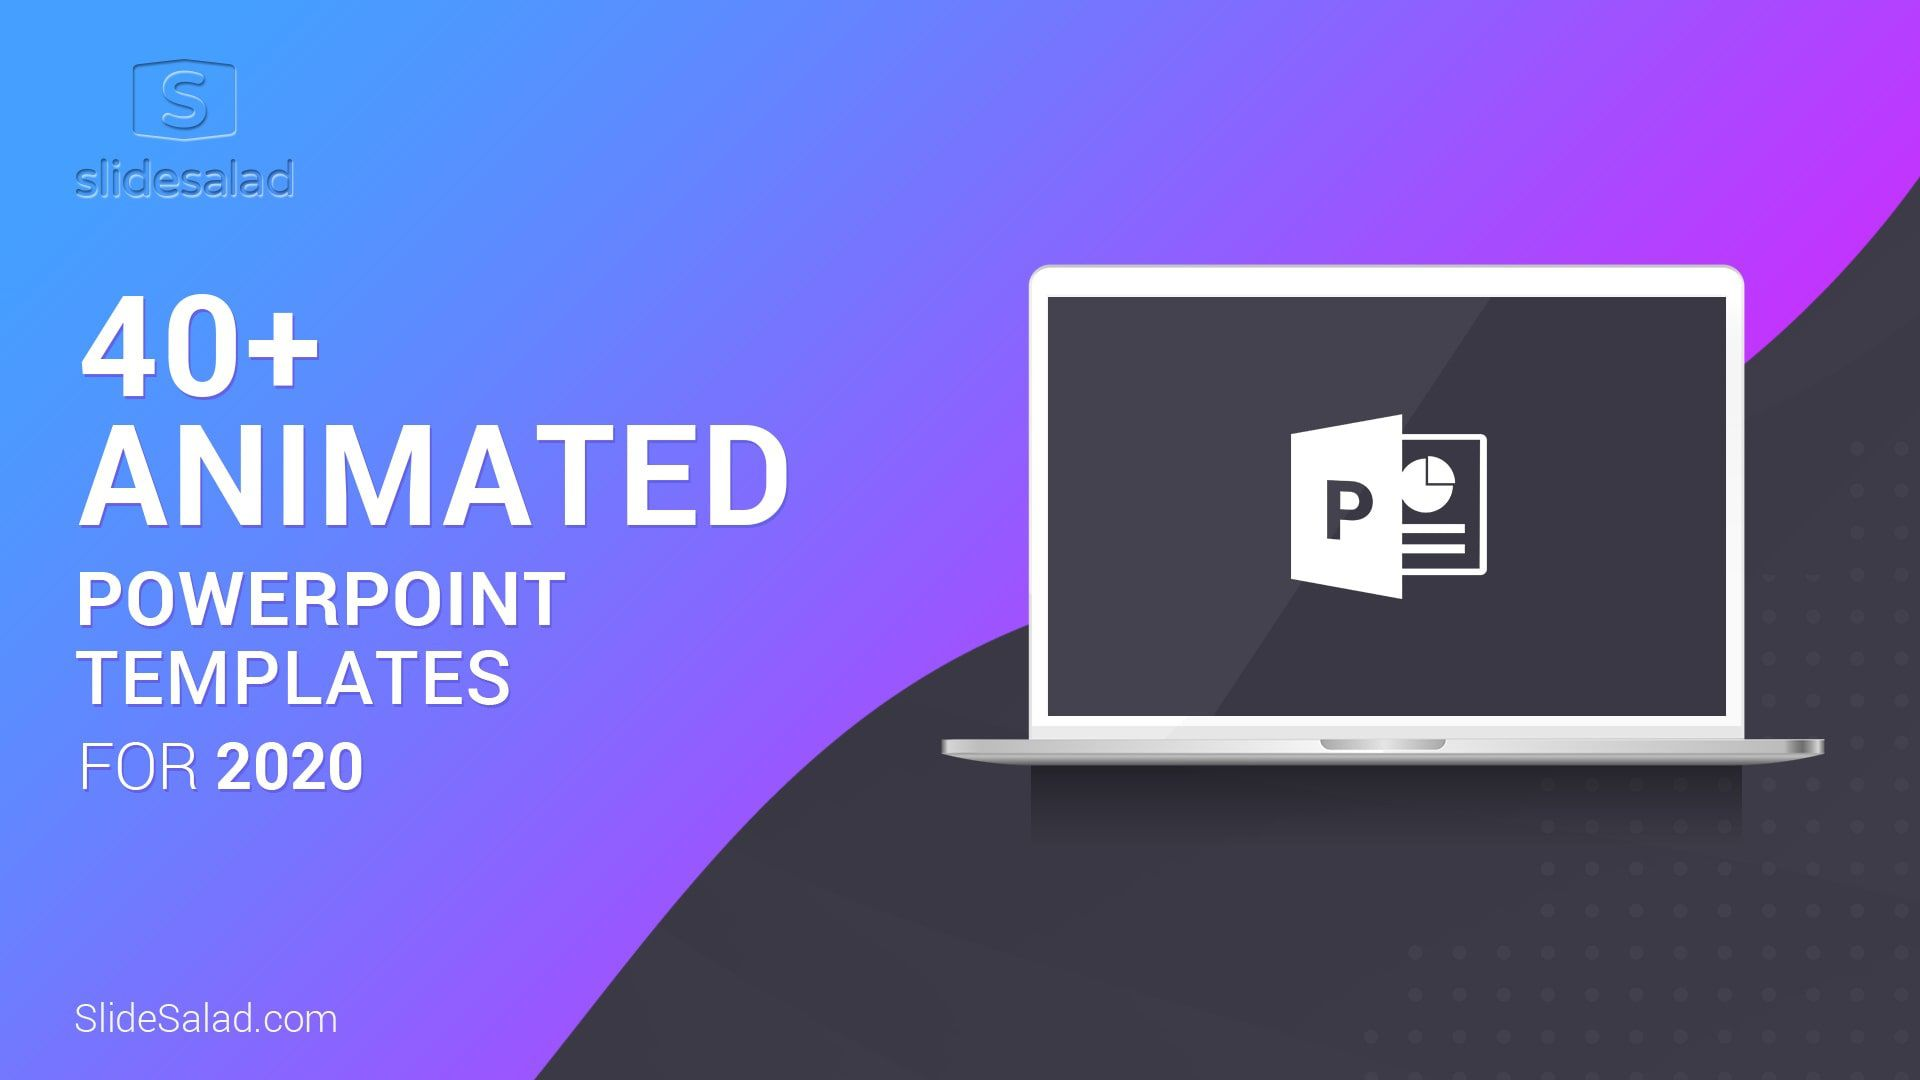 007 Unique 3d Animated Powerpoint Template Free Download 2013 Concept Full